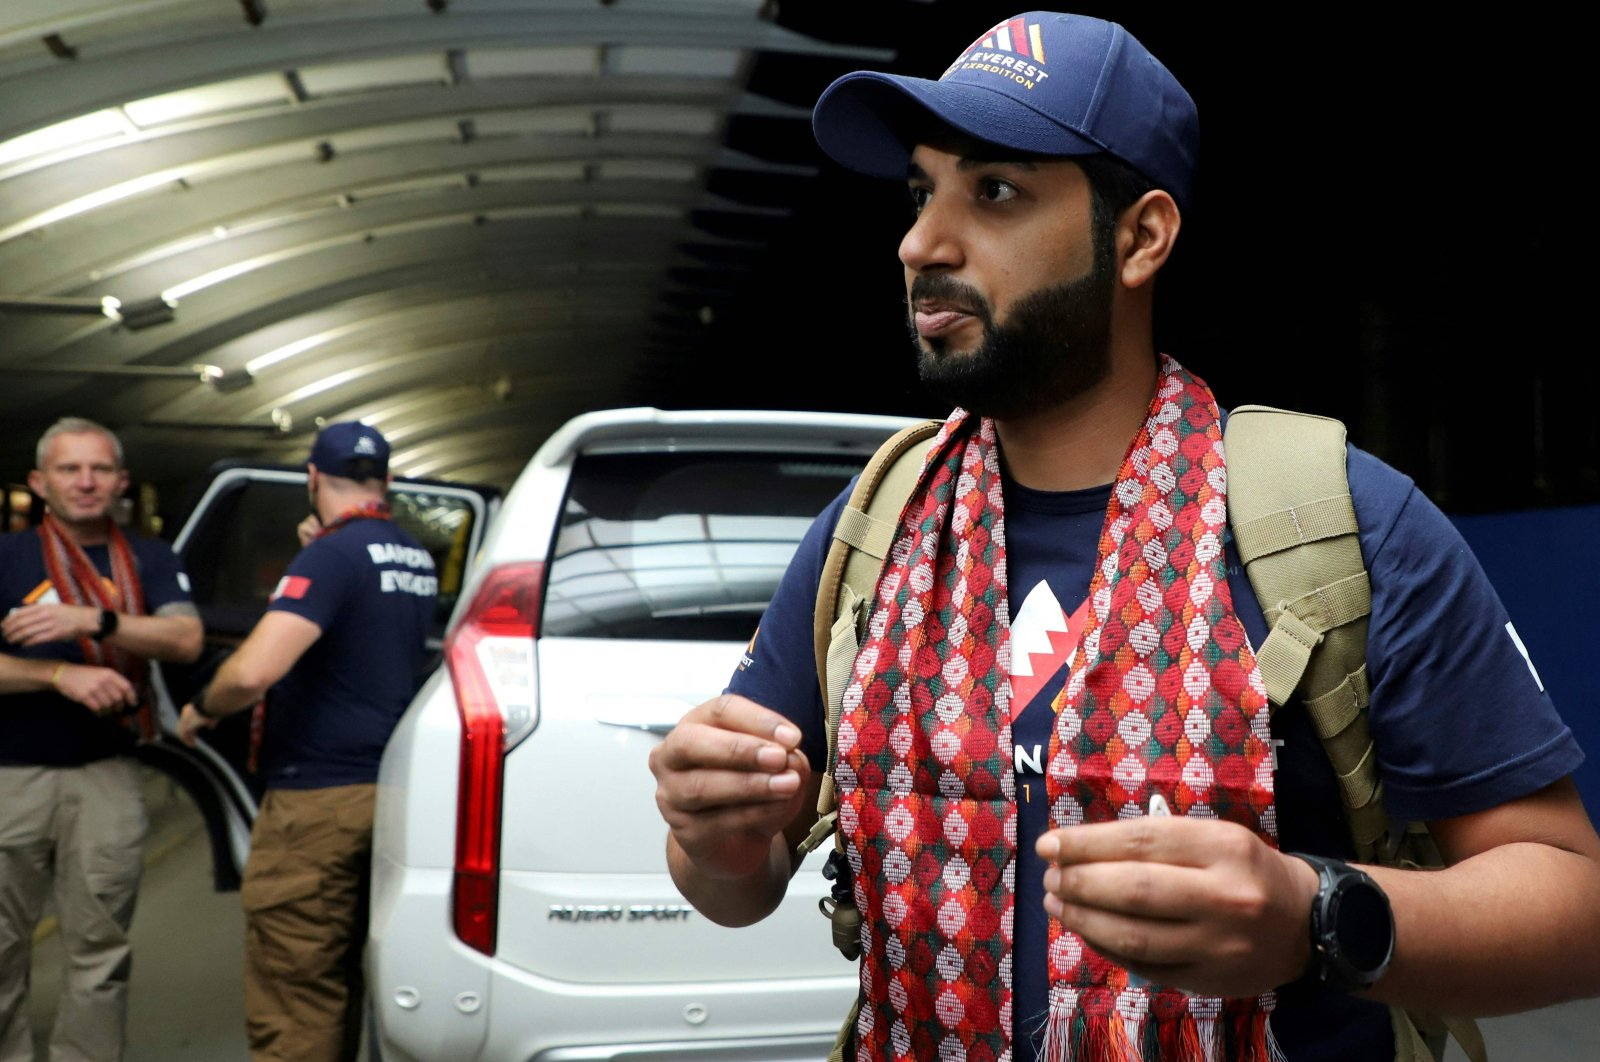 Sheikh Mohamed Hamad Mohamed Al Khalifa (R) arrives at Tribhuvan International Airport to climb Mount Everest, Kathmandu, March 15, 2021. (AFP Photo)